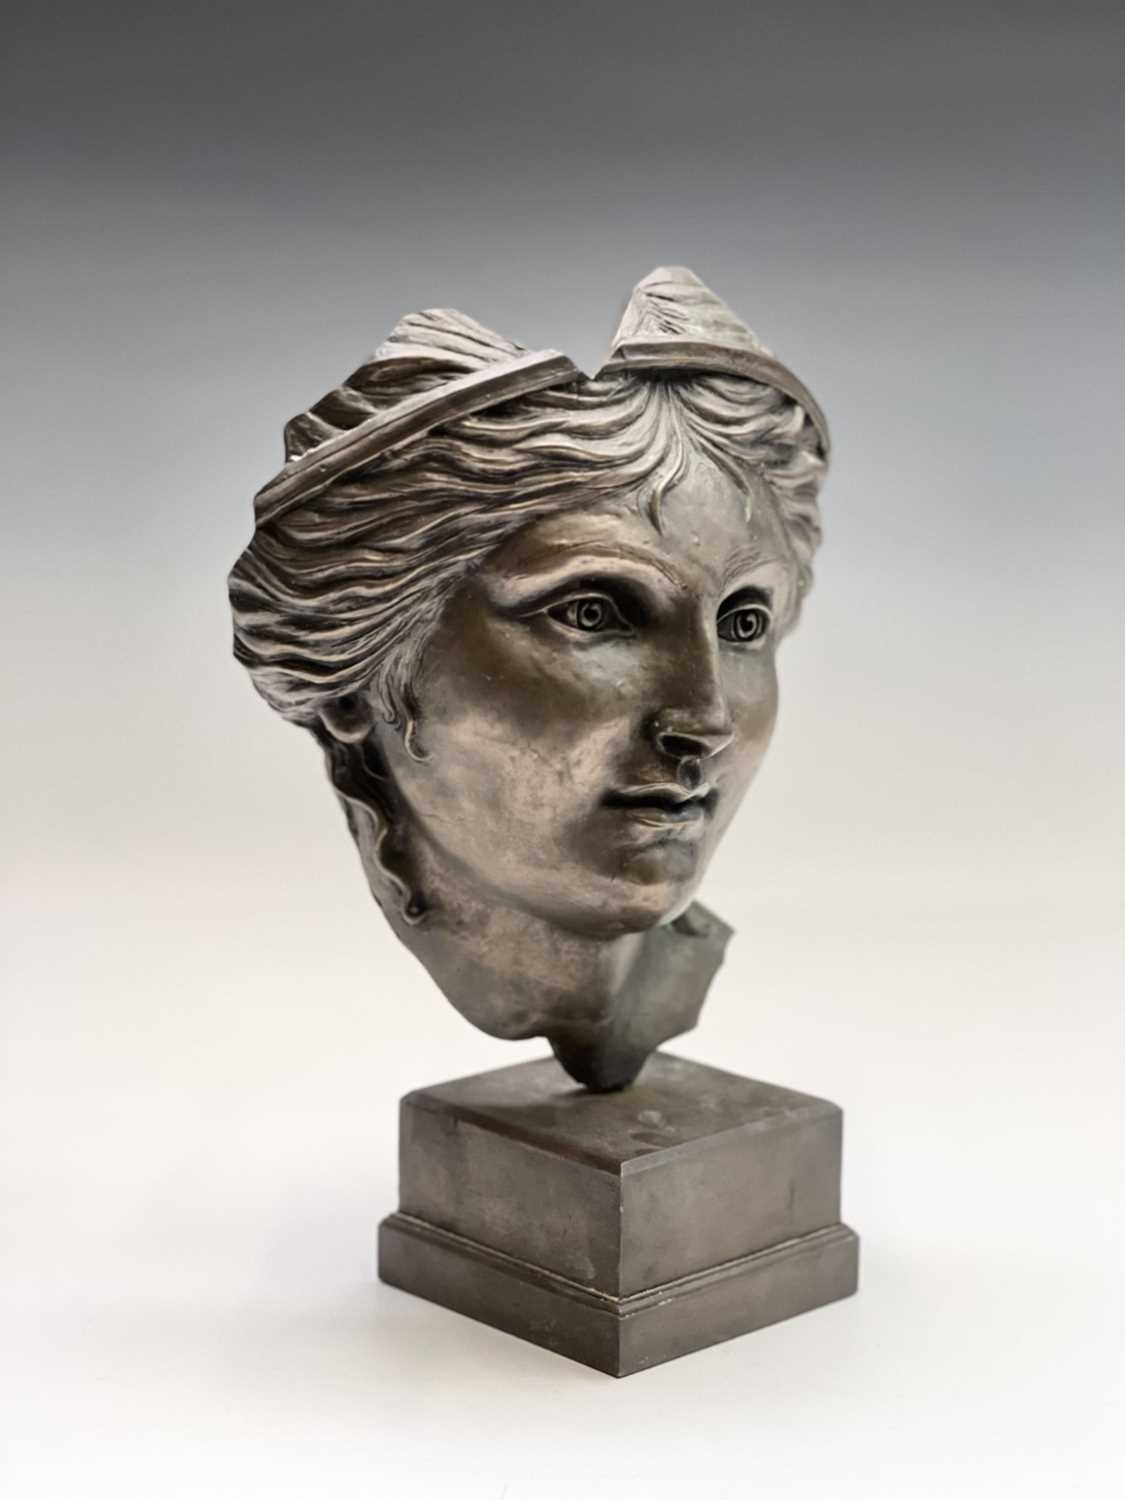 Alec WILES (1924)Aphrodite Bronzed resin mask and plinth Height 35cm - Image 8 of 8